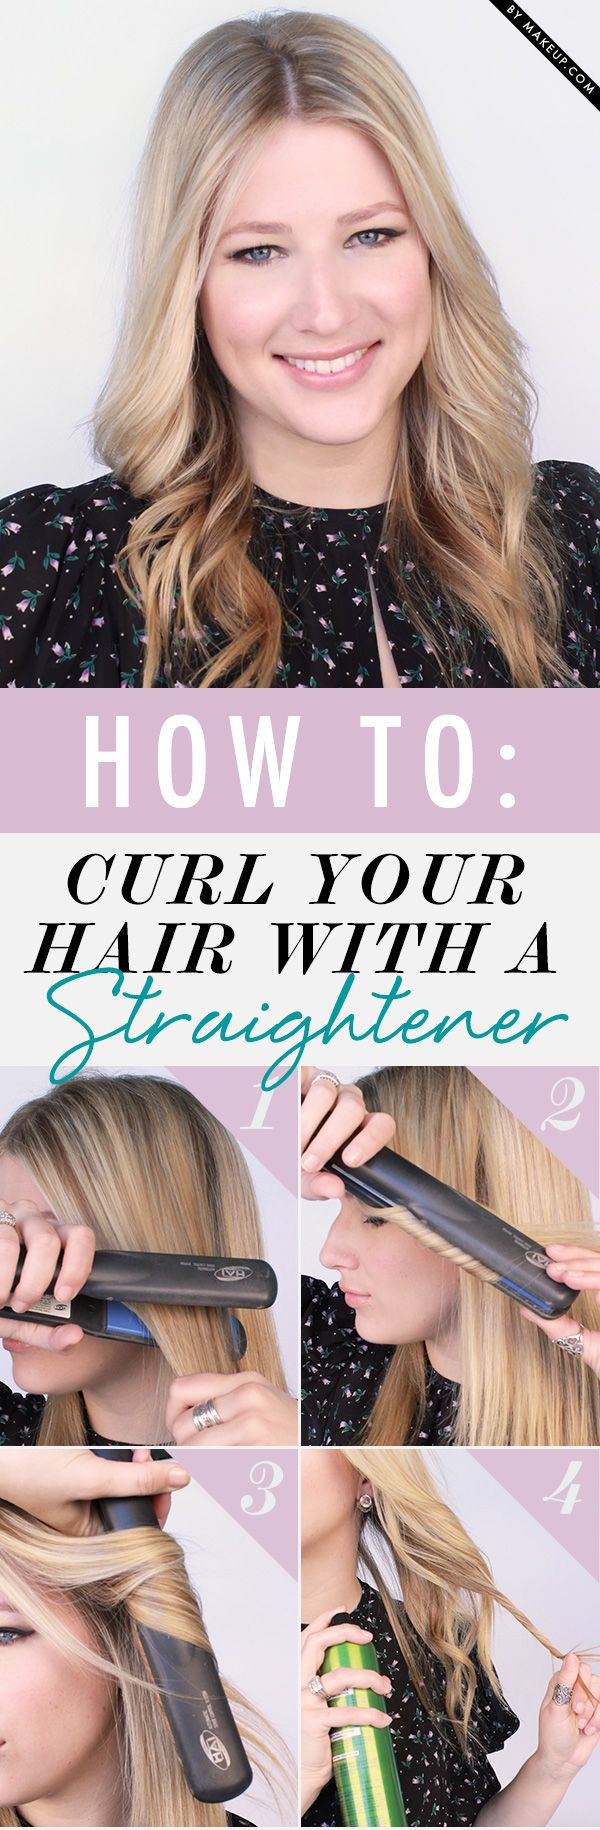 Curling your hair without a curling iron? YES, PLEASE!Curl your hair using your ...